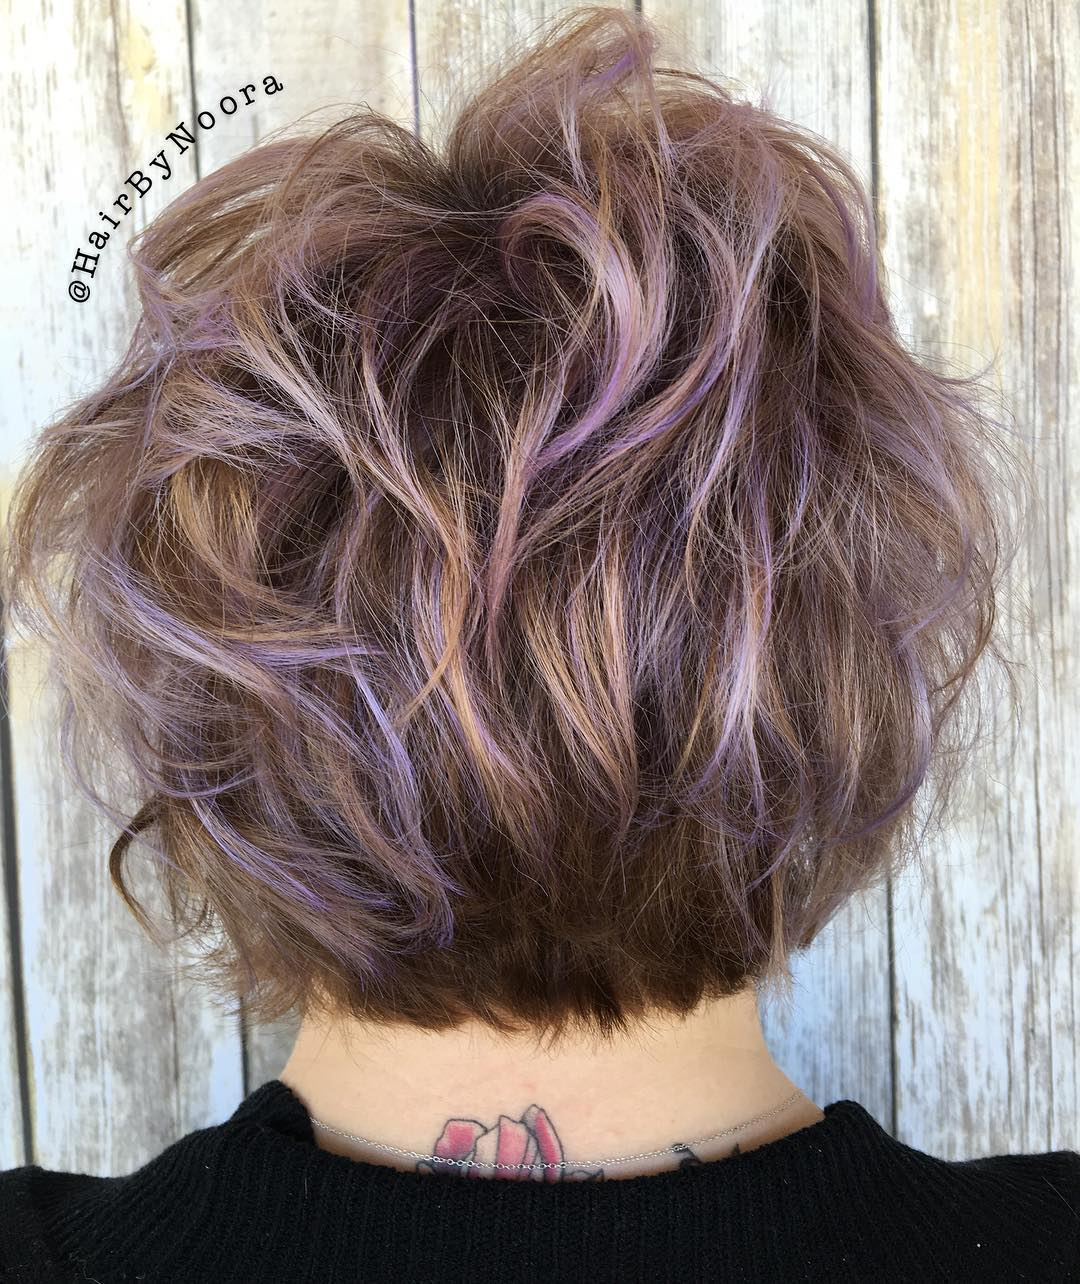 Short Brown Hair With Lavender Highlights